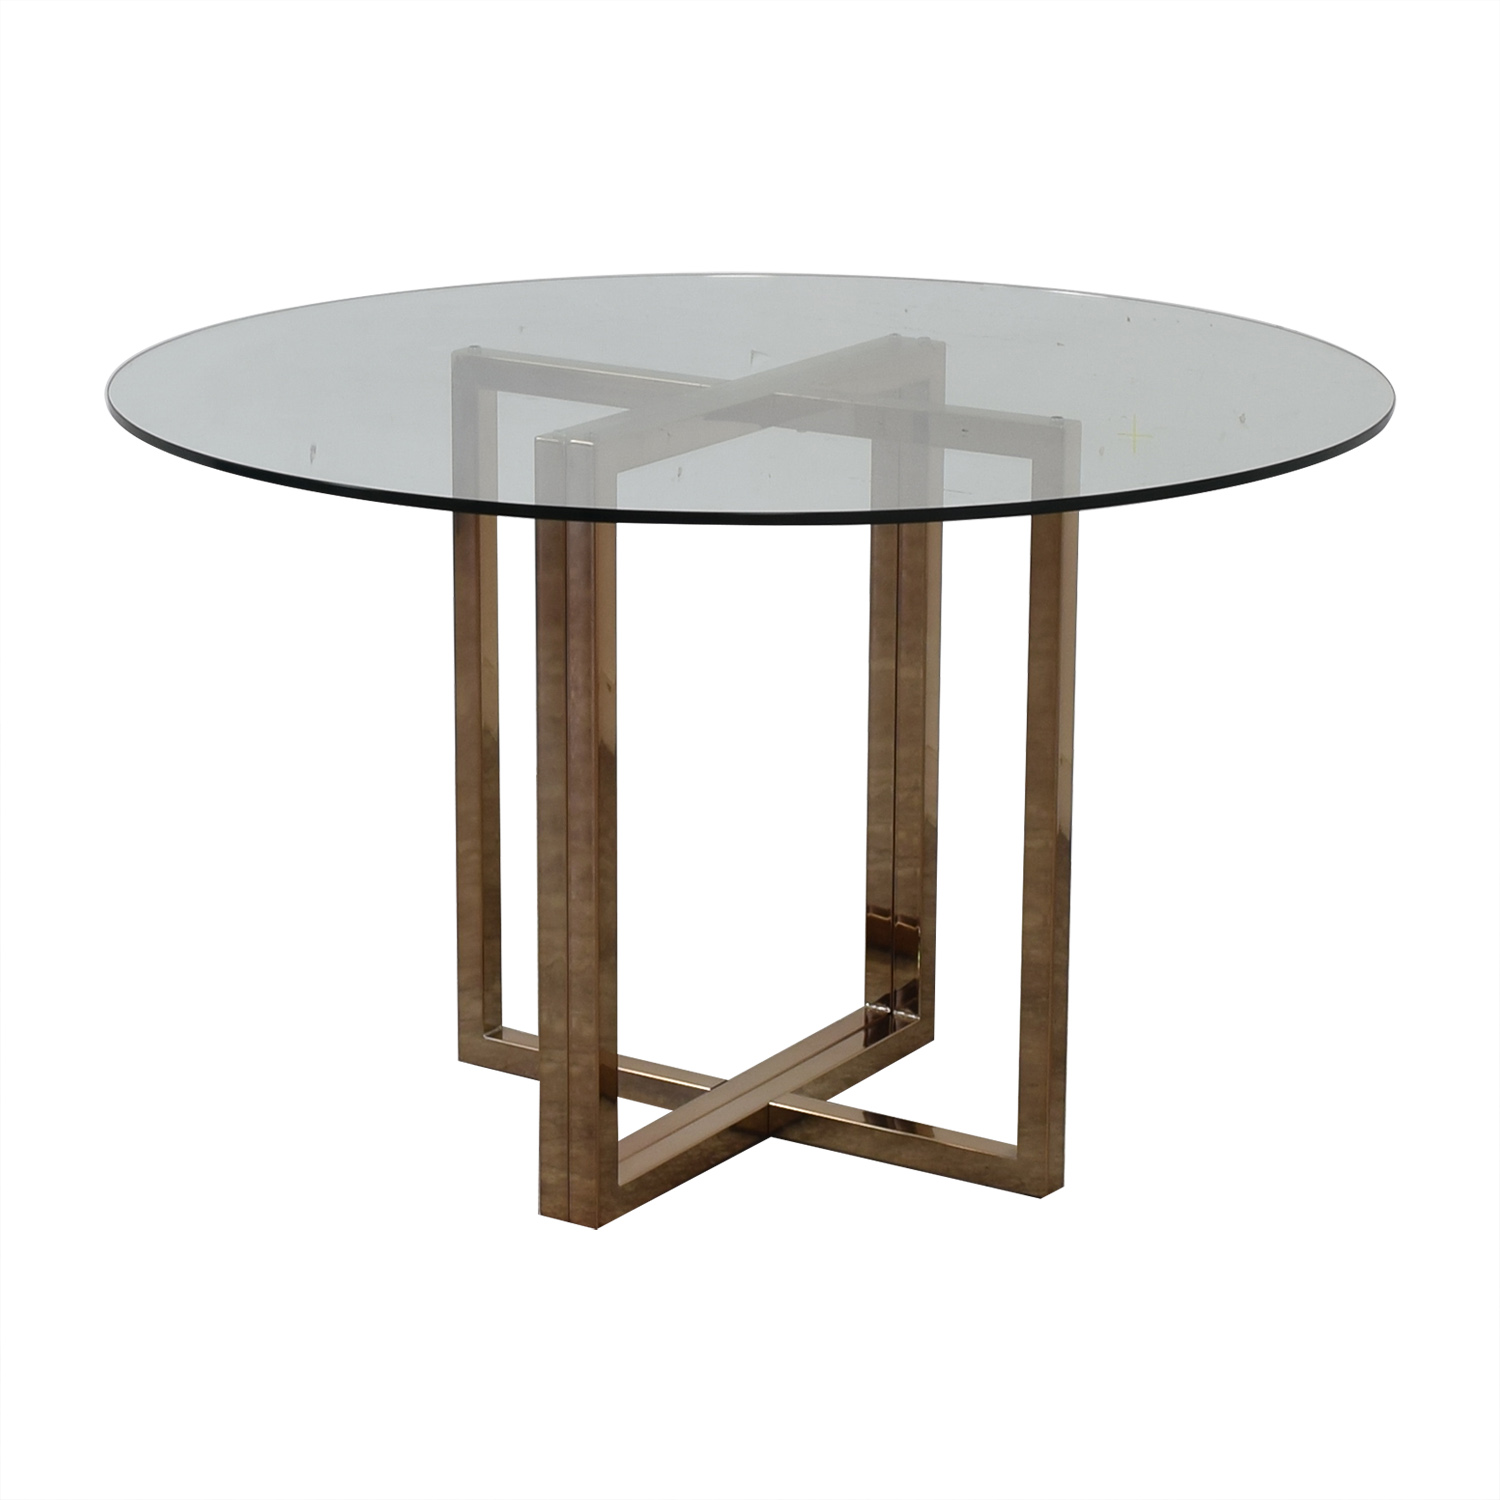 78 Off Cb2 Cb2 Glass And Chrome Round Dining Table Tables